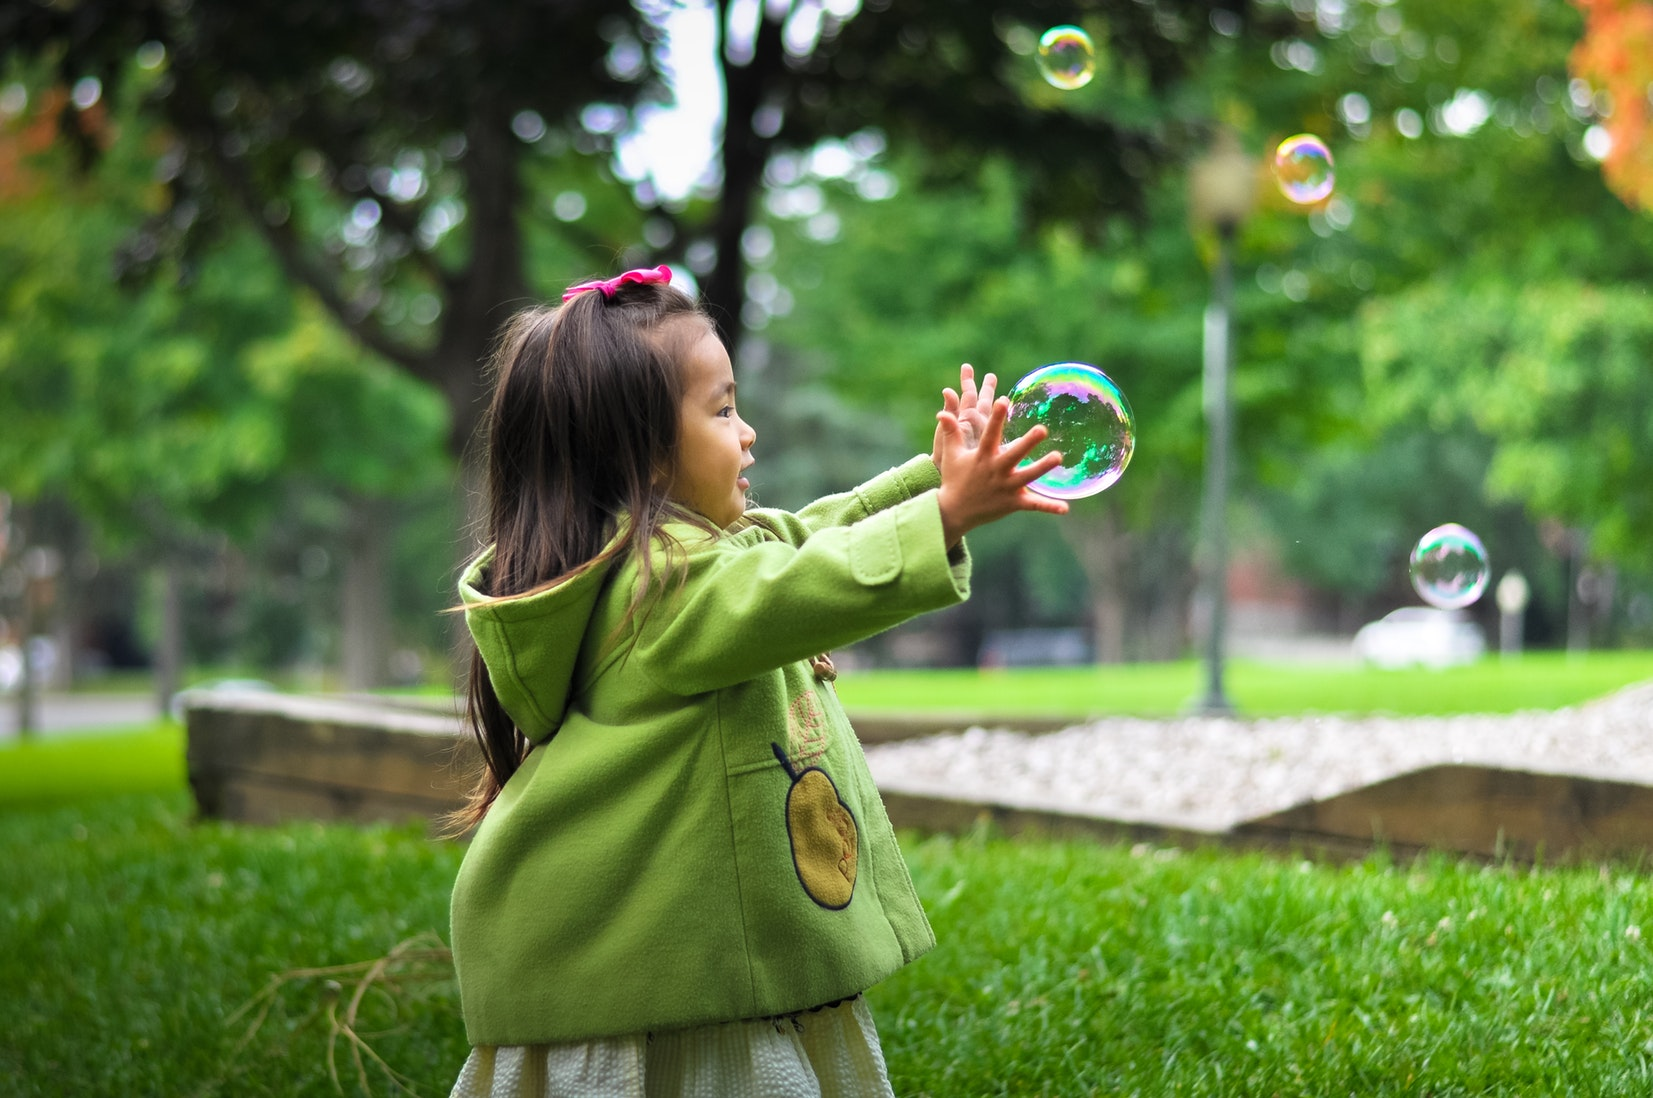 Young girl playing with bubble